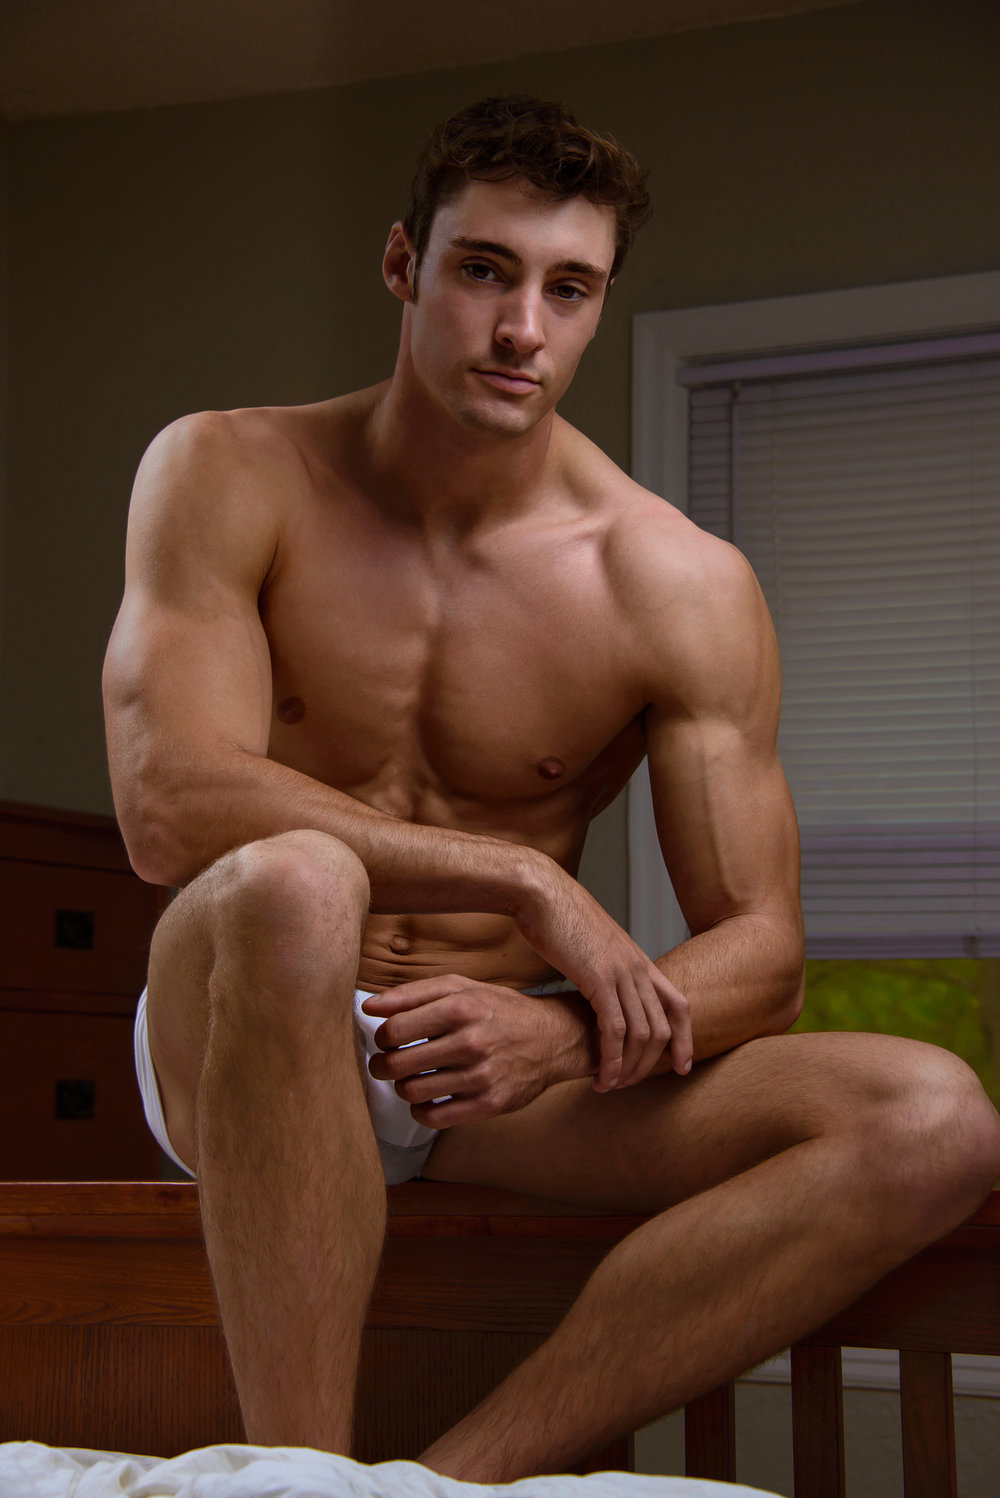 Matt-for-Todd-Sanfield-11.jpg